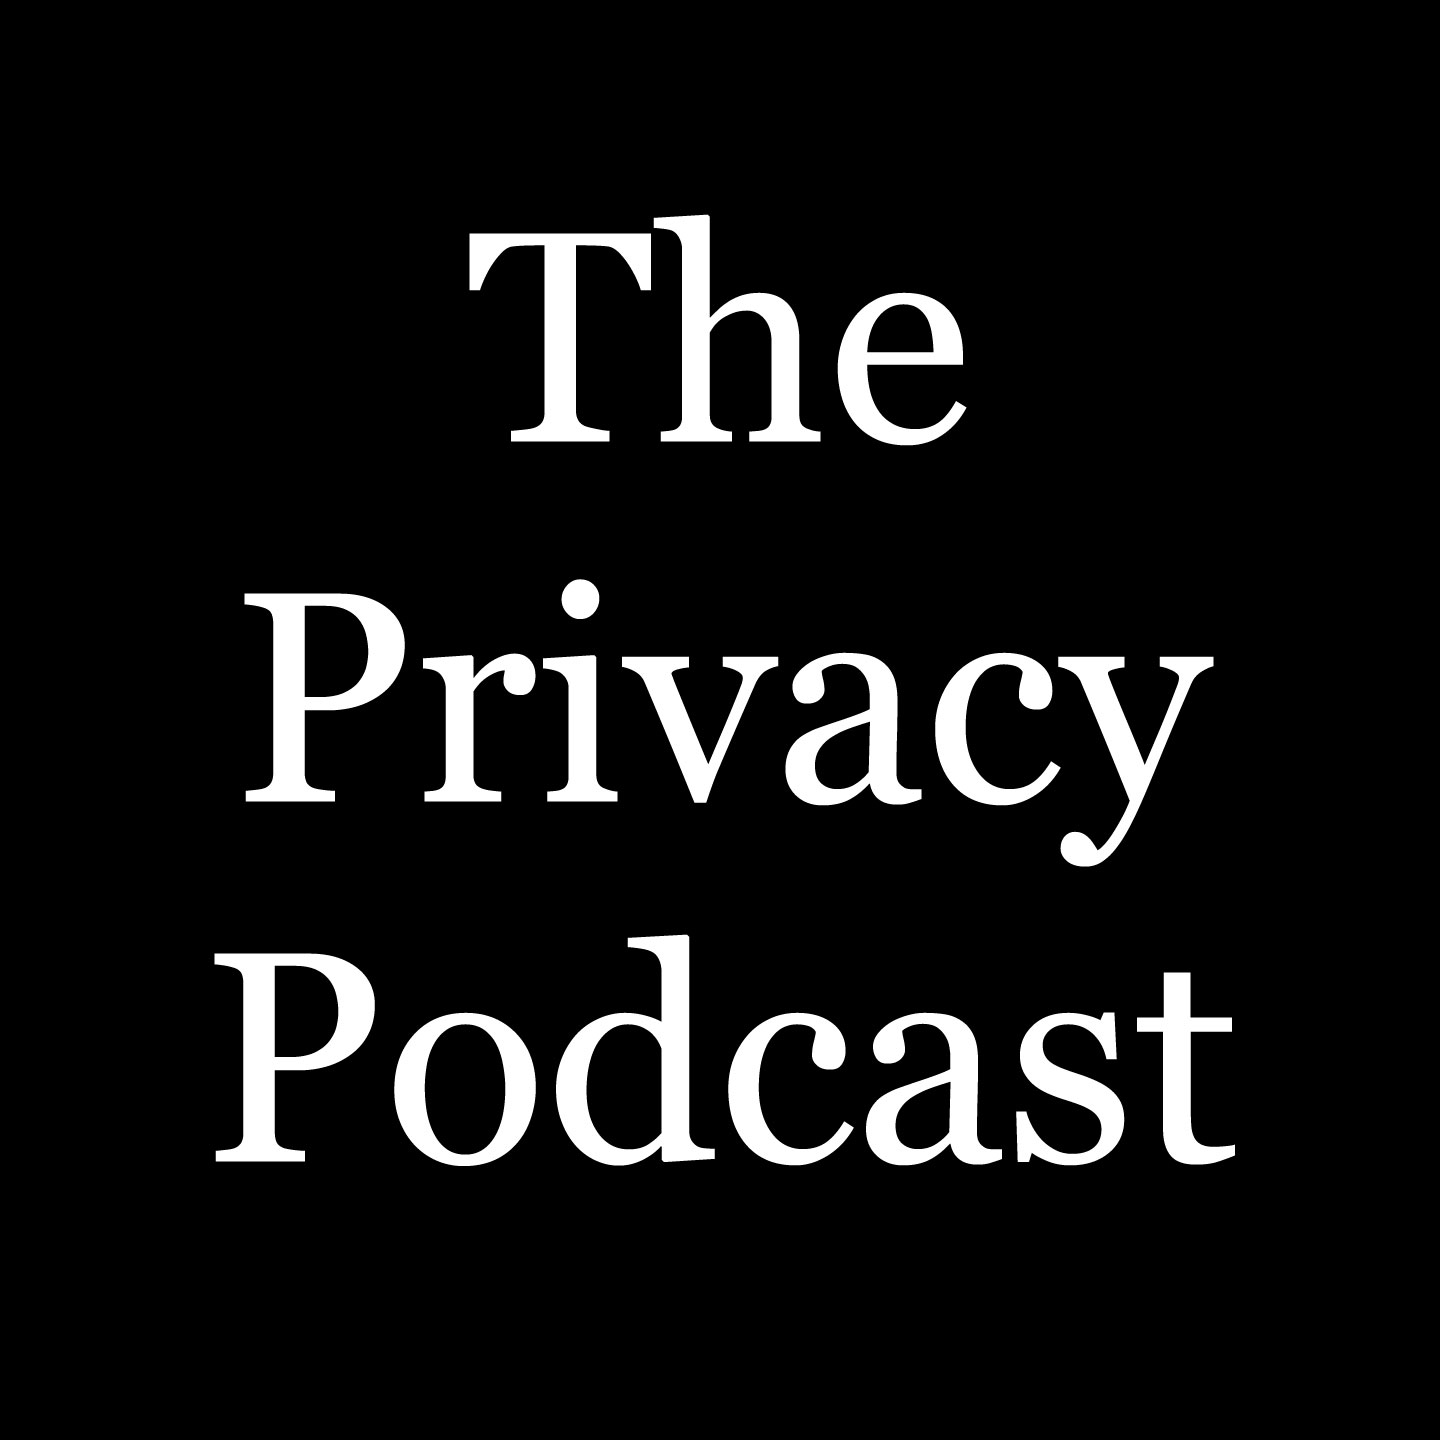 PrivacyPodcastGraphic